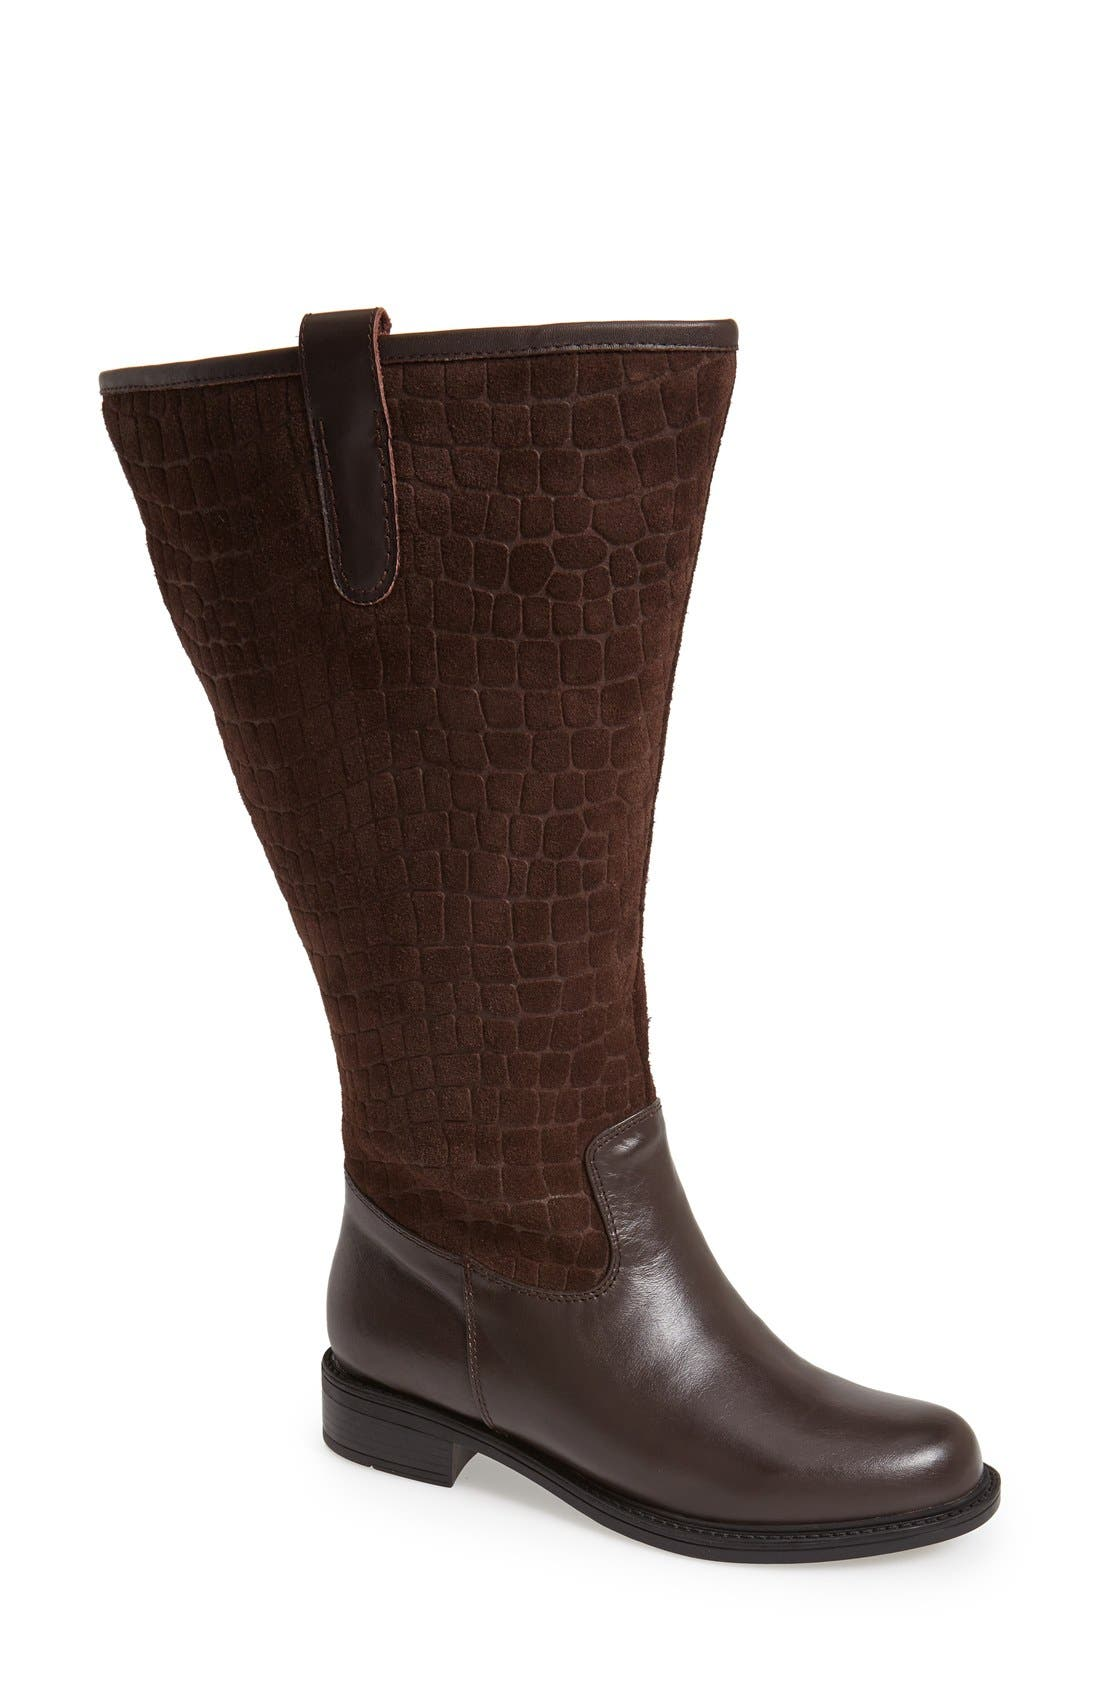 Alternate Image 1 Selected - David Tate 'Best' Calfskin Leather & Suede Boot (Extra Wide Calf)